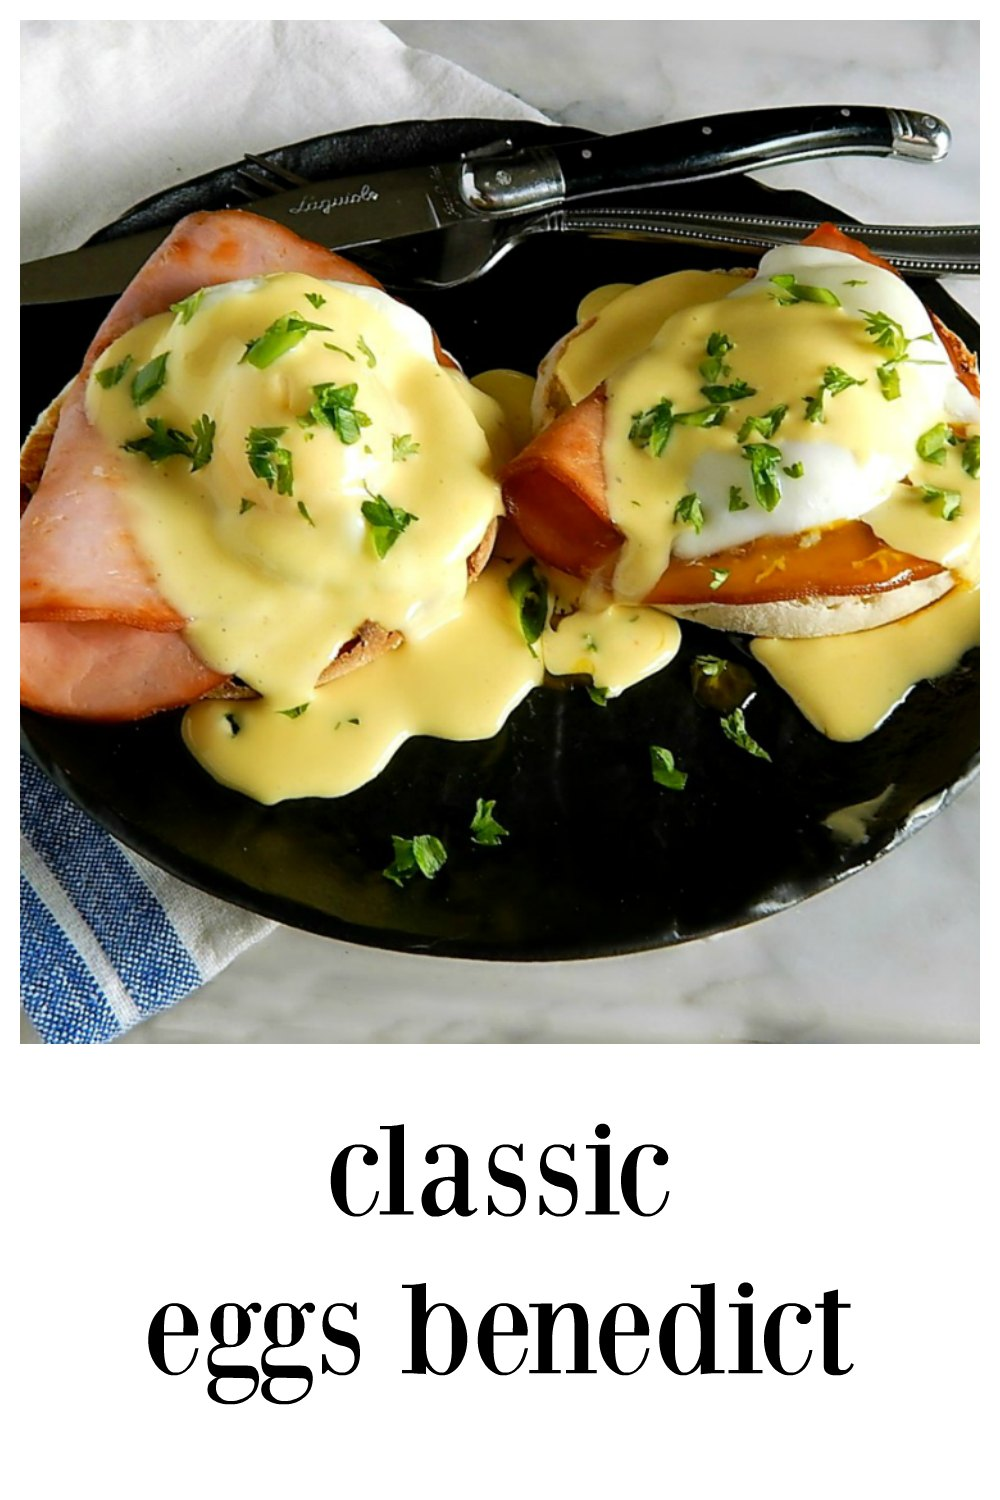 Classic Eggs Benedict. The big secret is how easy it is. Eggs over English muffins & ham, napped with Hollandaise. I'll show you how to juggle it all to get it to the table. #ClassicEggsBenedict #EggsBenedict #Breakfast #Brunch #LeftoverHam #CanadianBacon #EggDishes